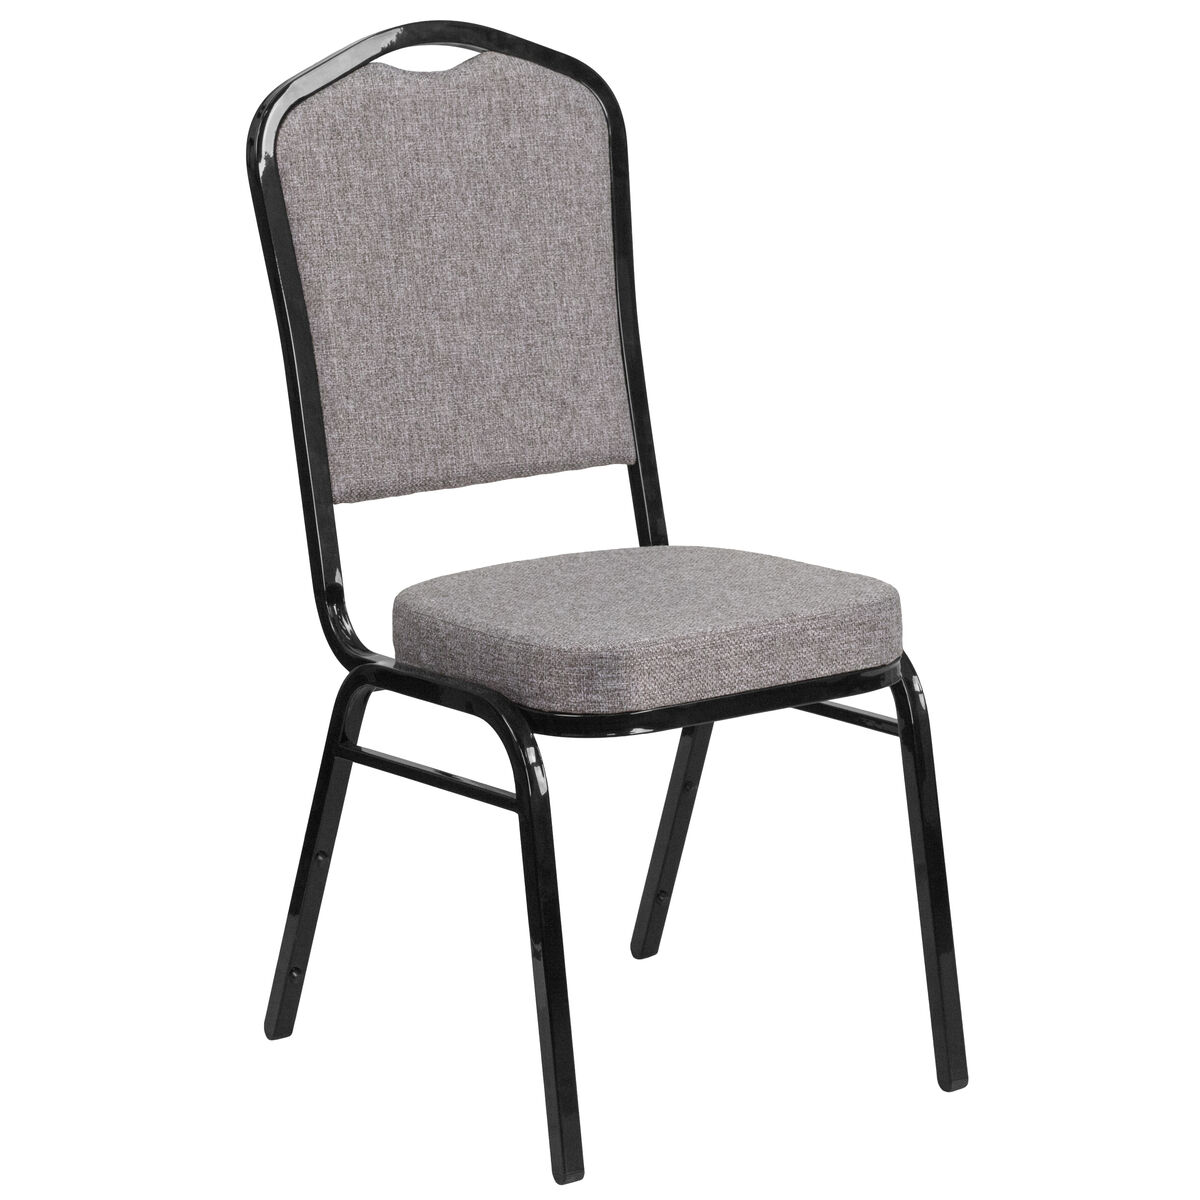 Crown Back Stacking Banquet Chair in Gray Fabric - Black Frame